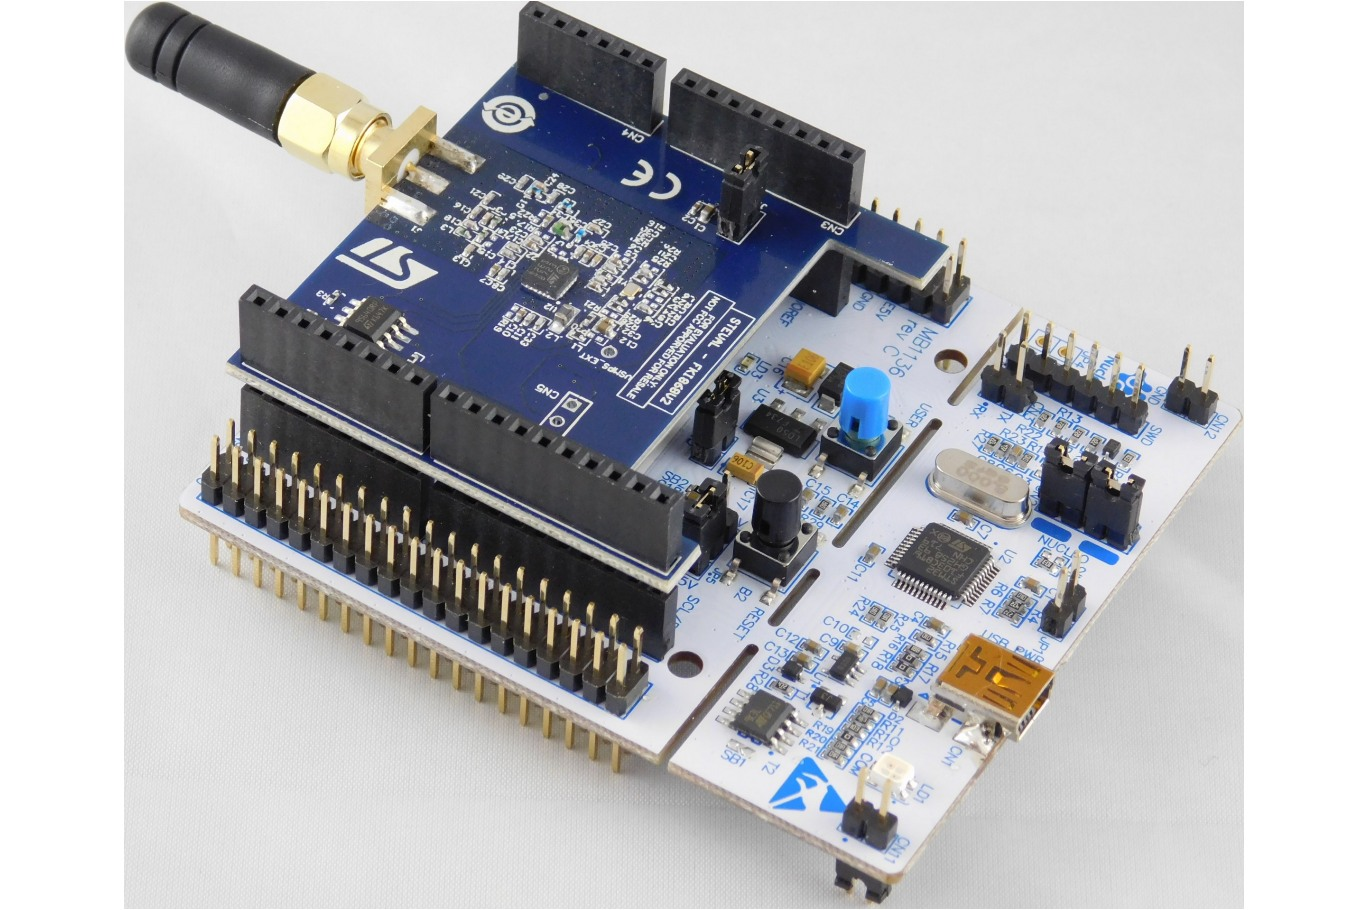 Universal Rc5 Rc6 Transceiver With Pic16f628